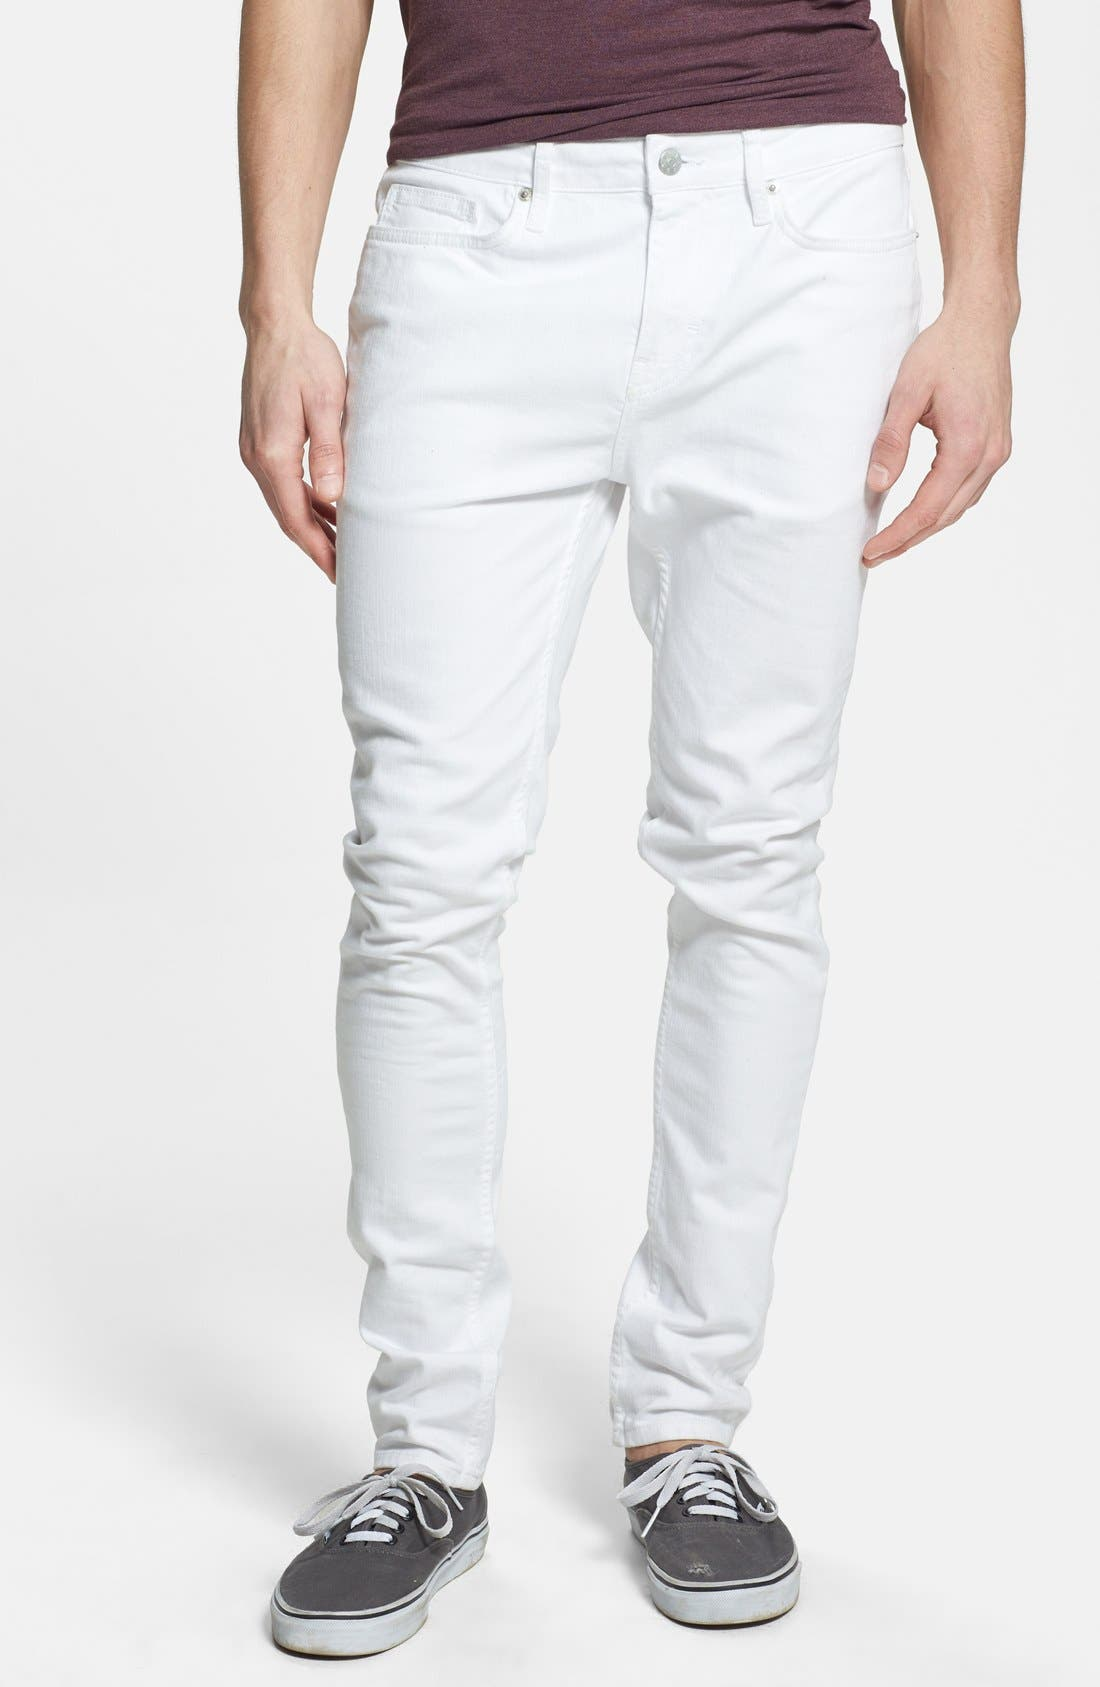 Stretch Skinny Fit Jeans,                         Main,                         color, White